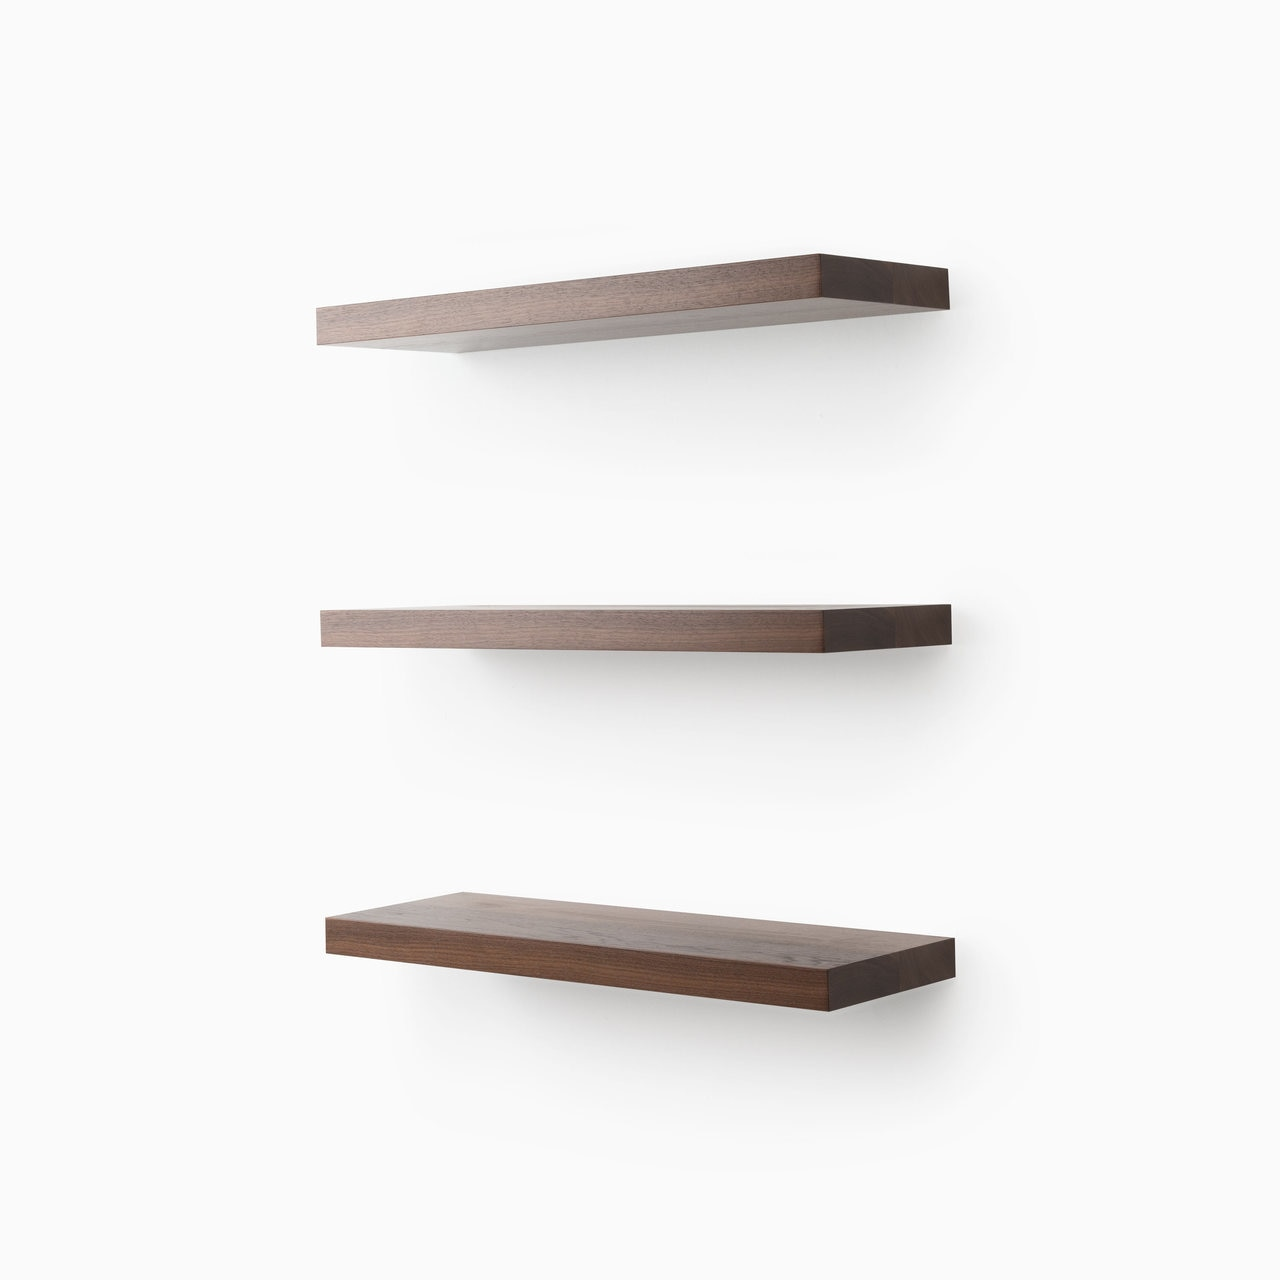 aksel nearly walnut floating shelf system shelfology three quarter deep design your wall with our easy install mobile kitchen bench thick shelves open rustic high gloss cabinets